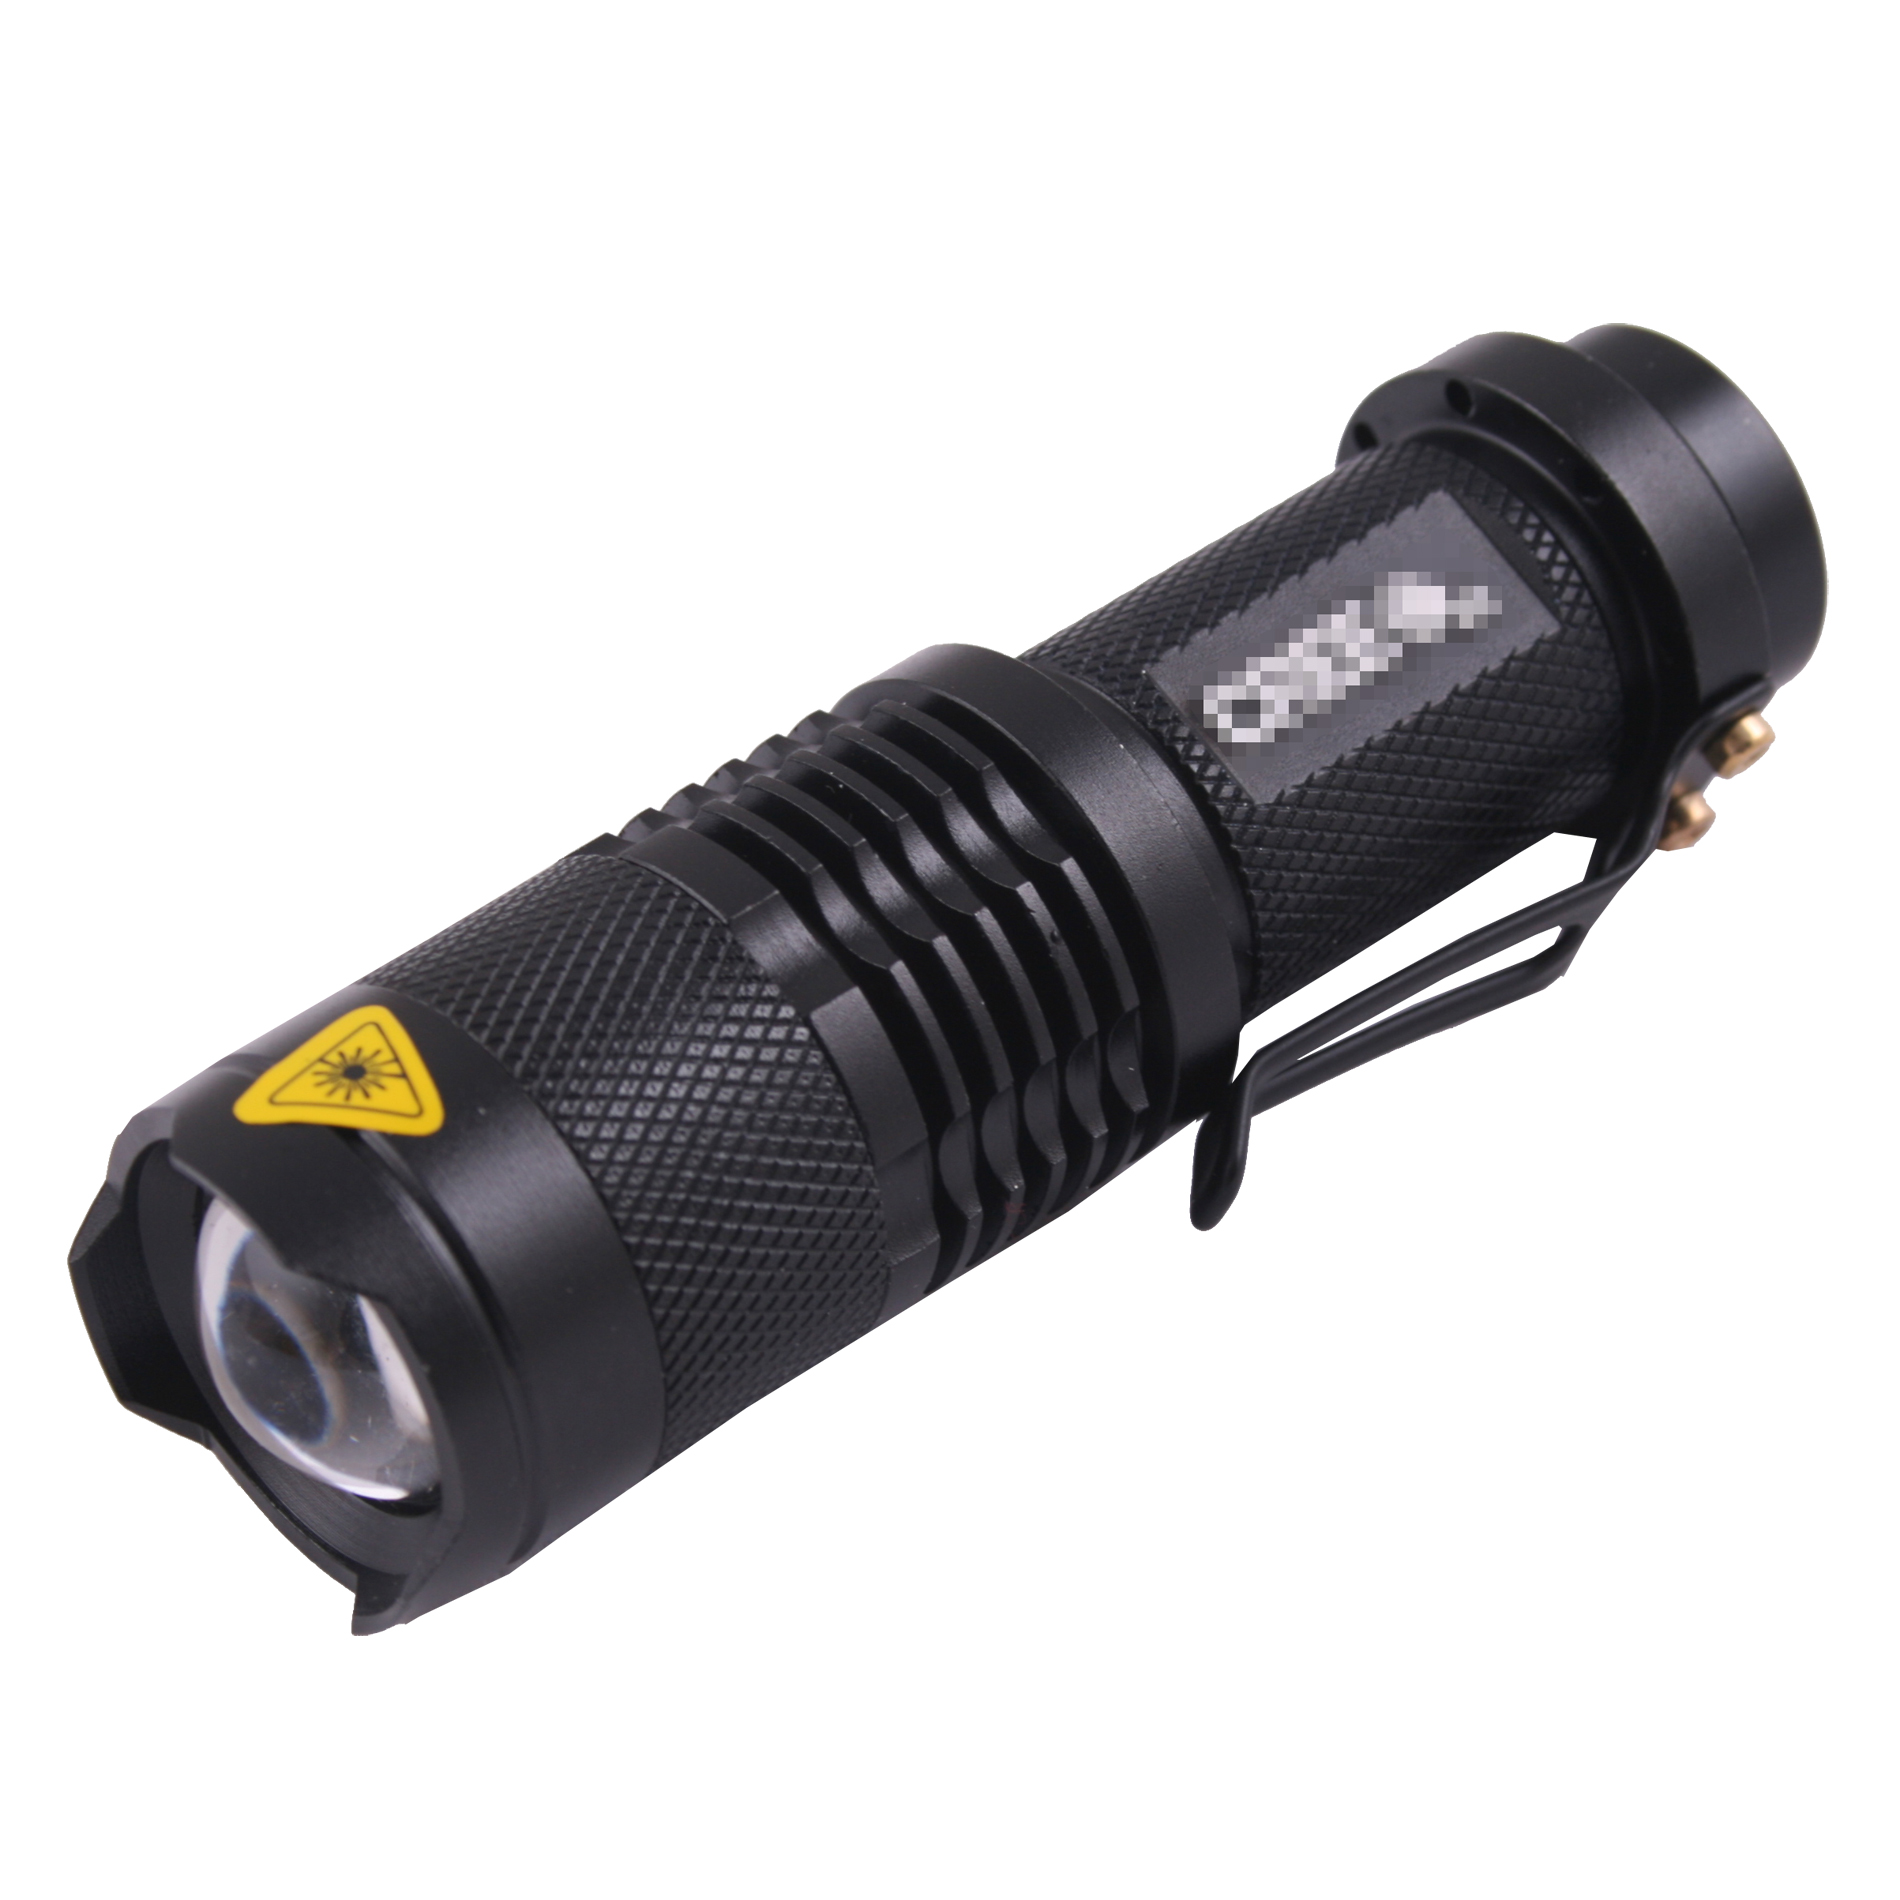 NEW 600LM Lumen Q5 LED Zoomable Waterproof Torch Flashlight